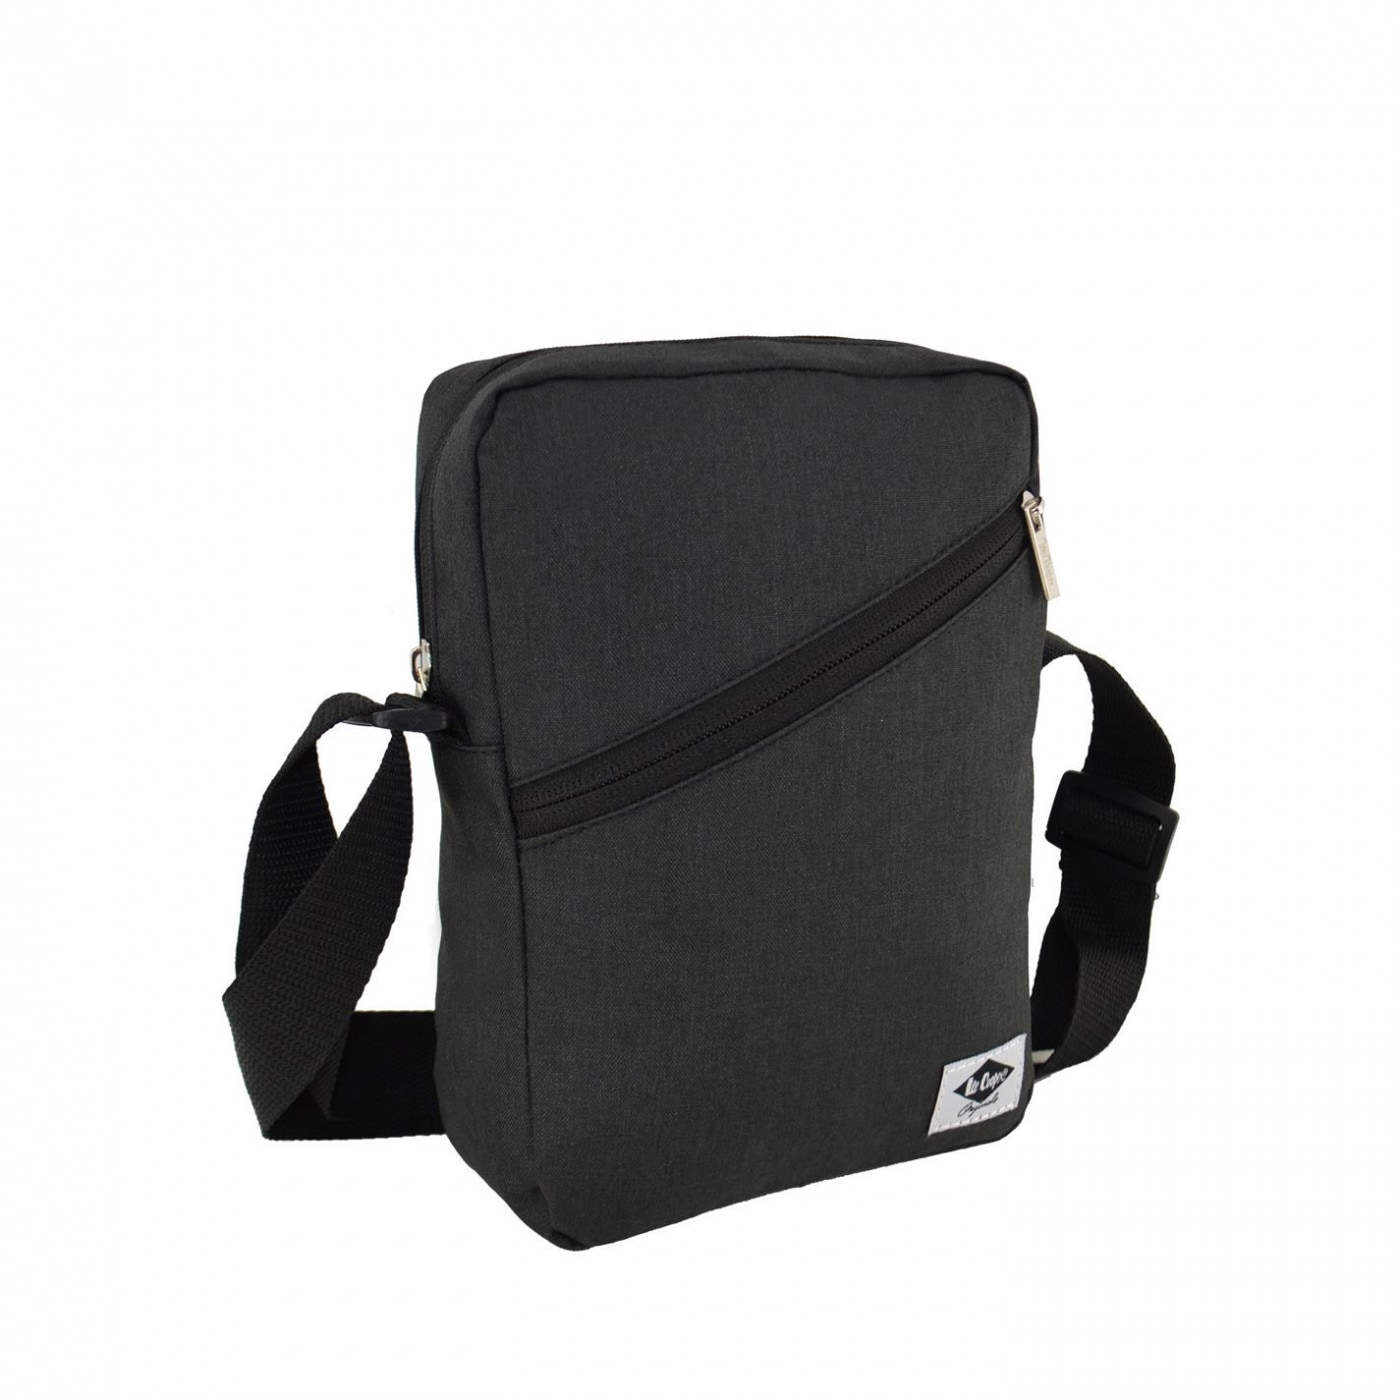 Lee Cooper Marl Gadget Bag